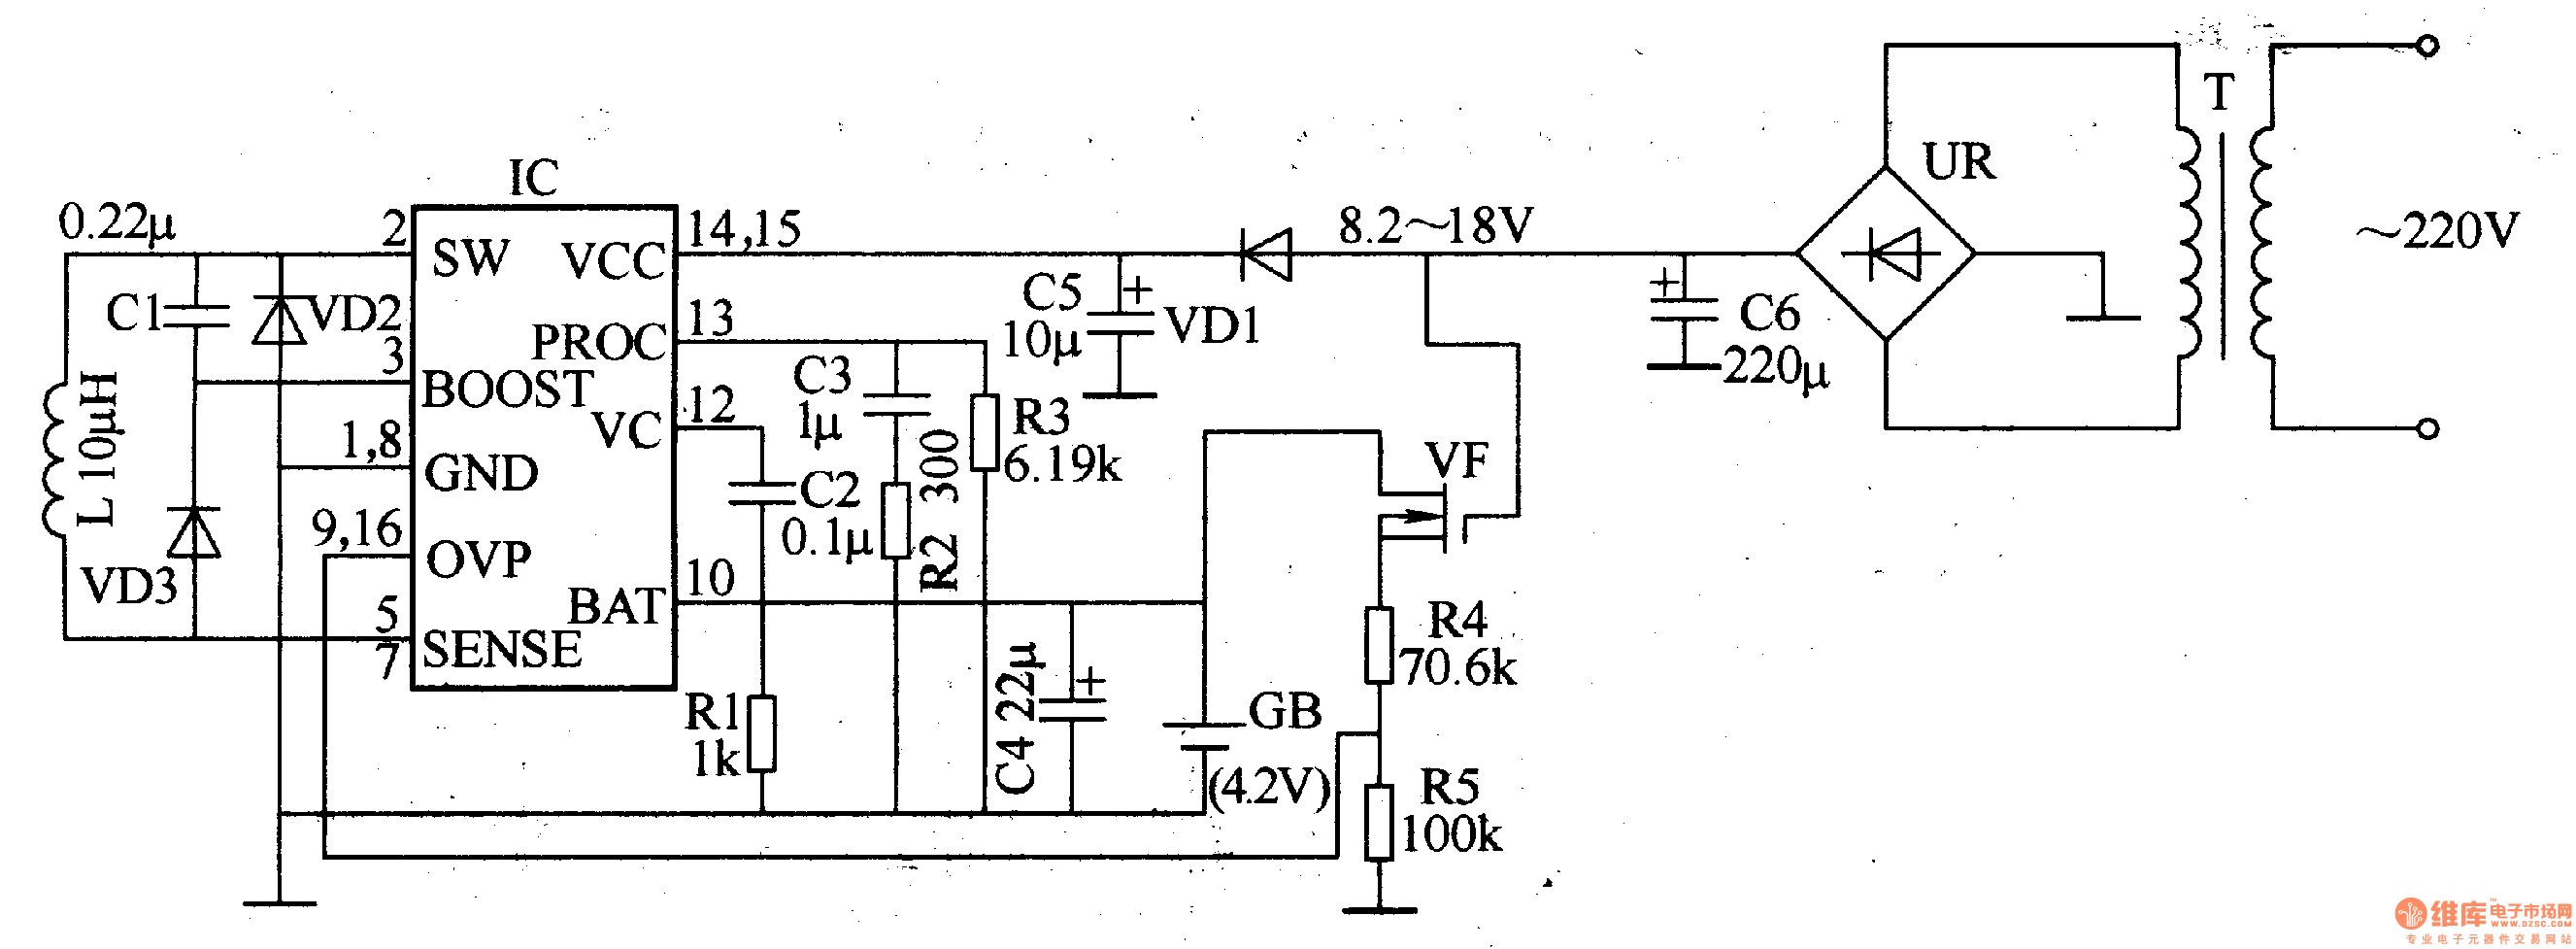 Car Charger Circuit Diagram My Wiring Diagram